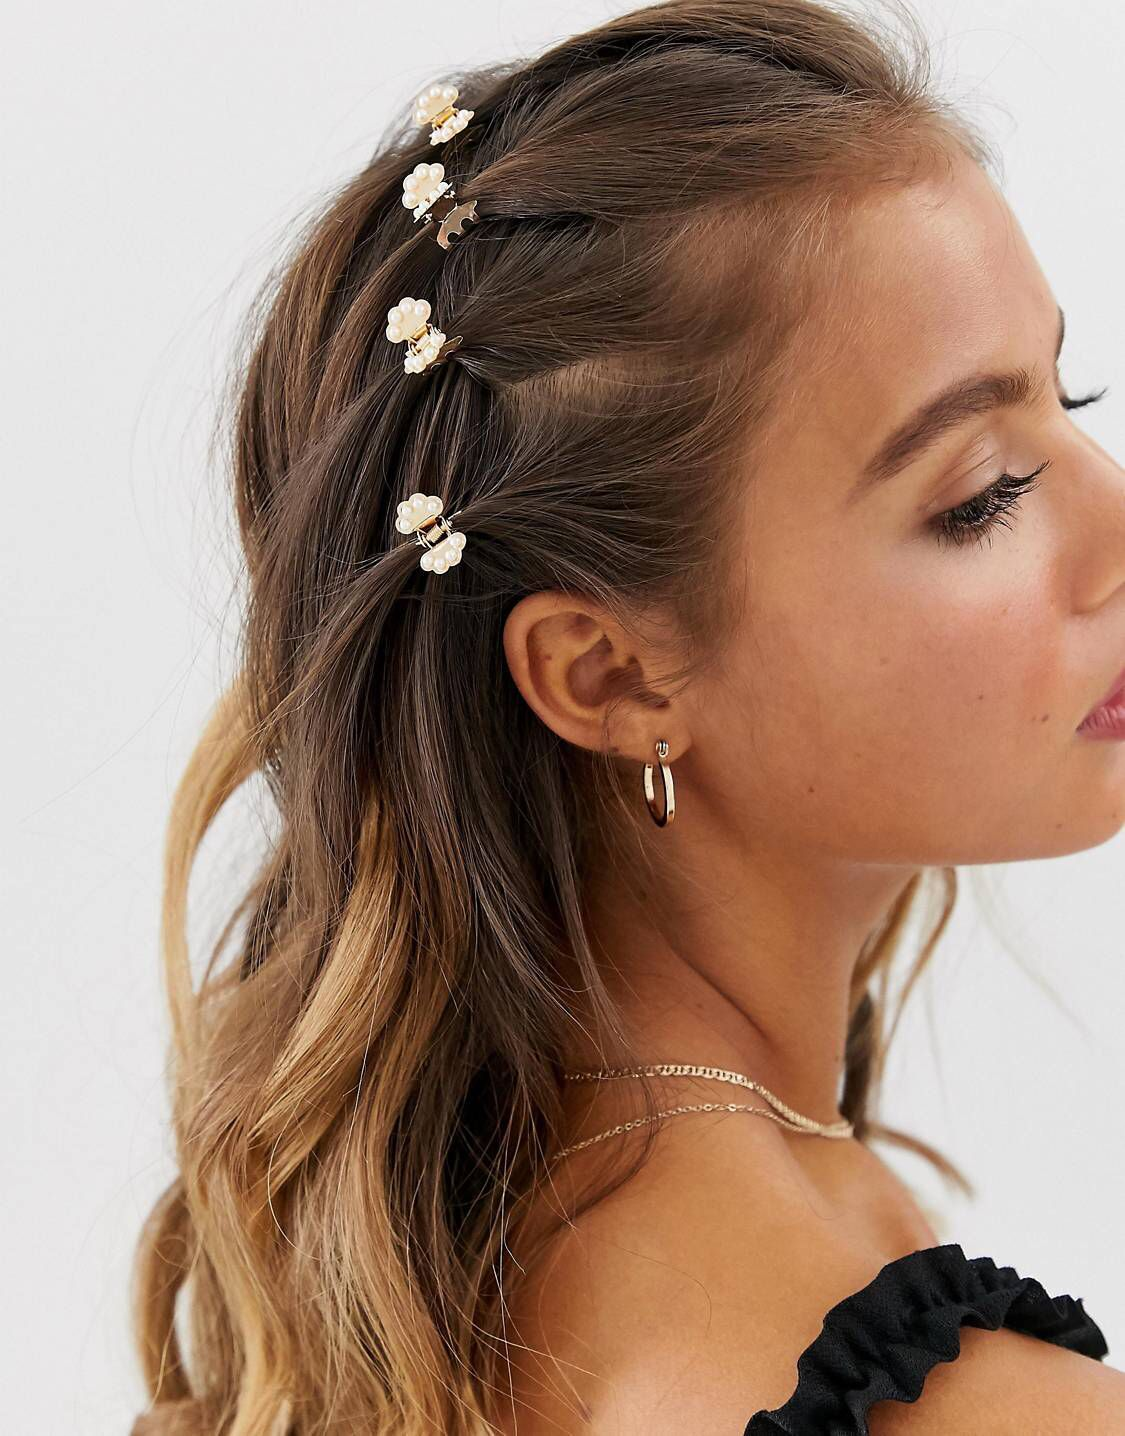 Pin by Pia Lee on ACCESSORIES   Clip hairstyles, Hair claw, Hair ...